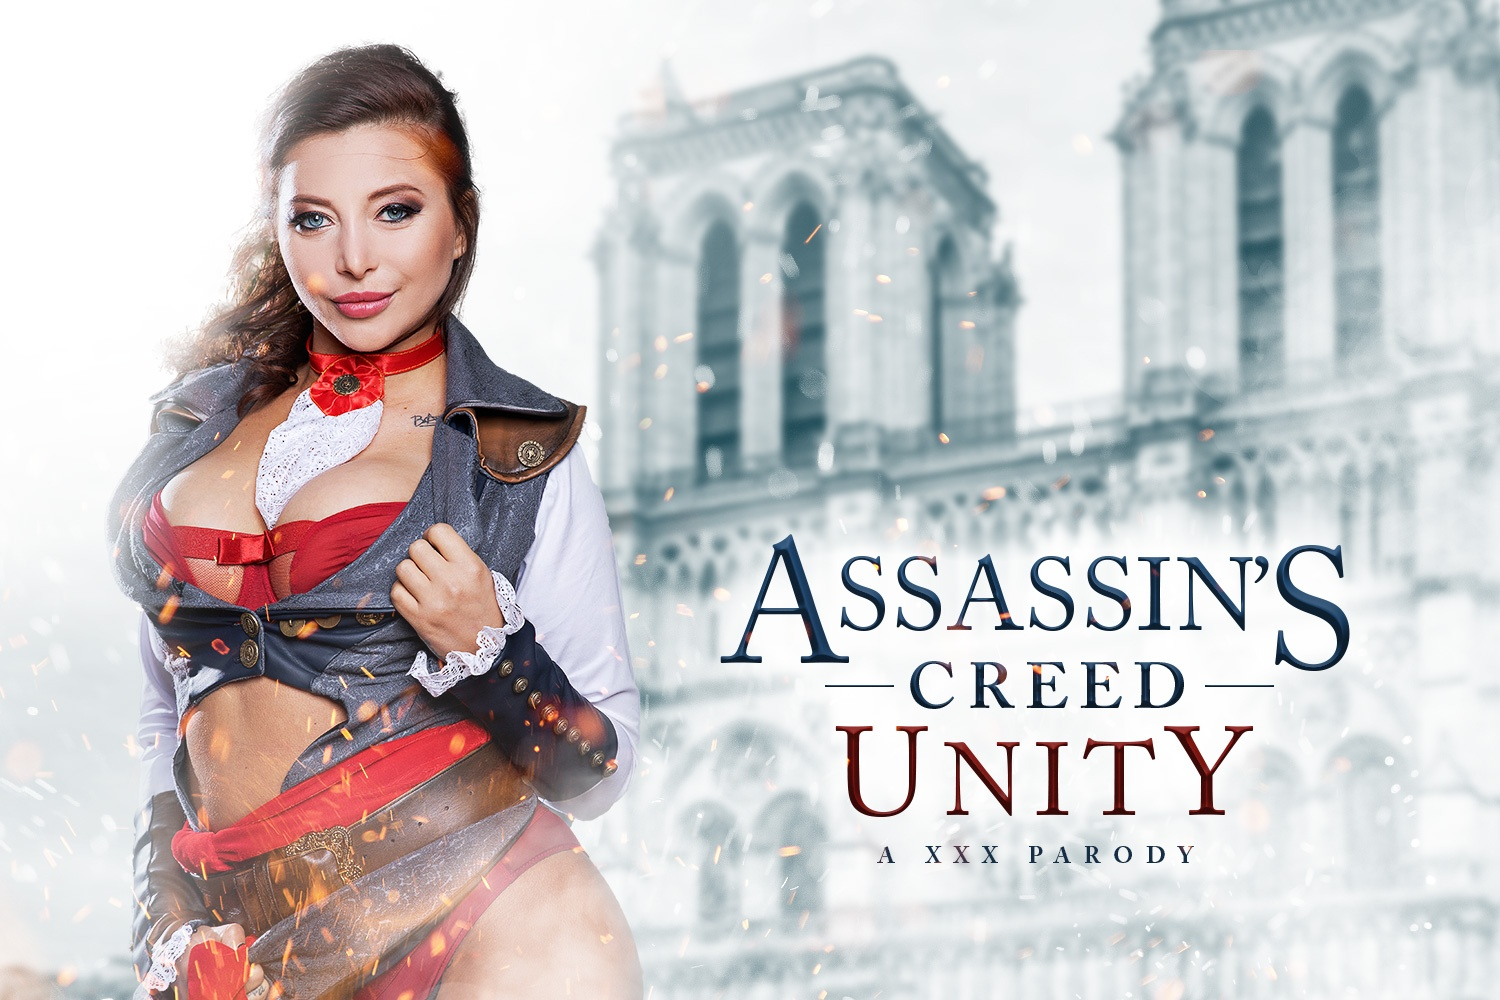 Assassins Creed: Unity A XXX Parody Anna Polina